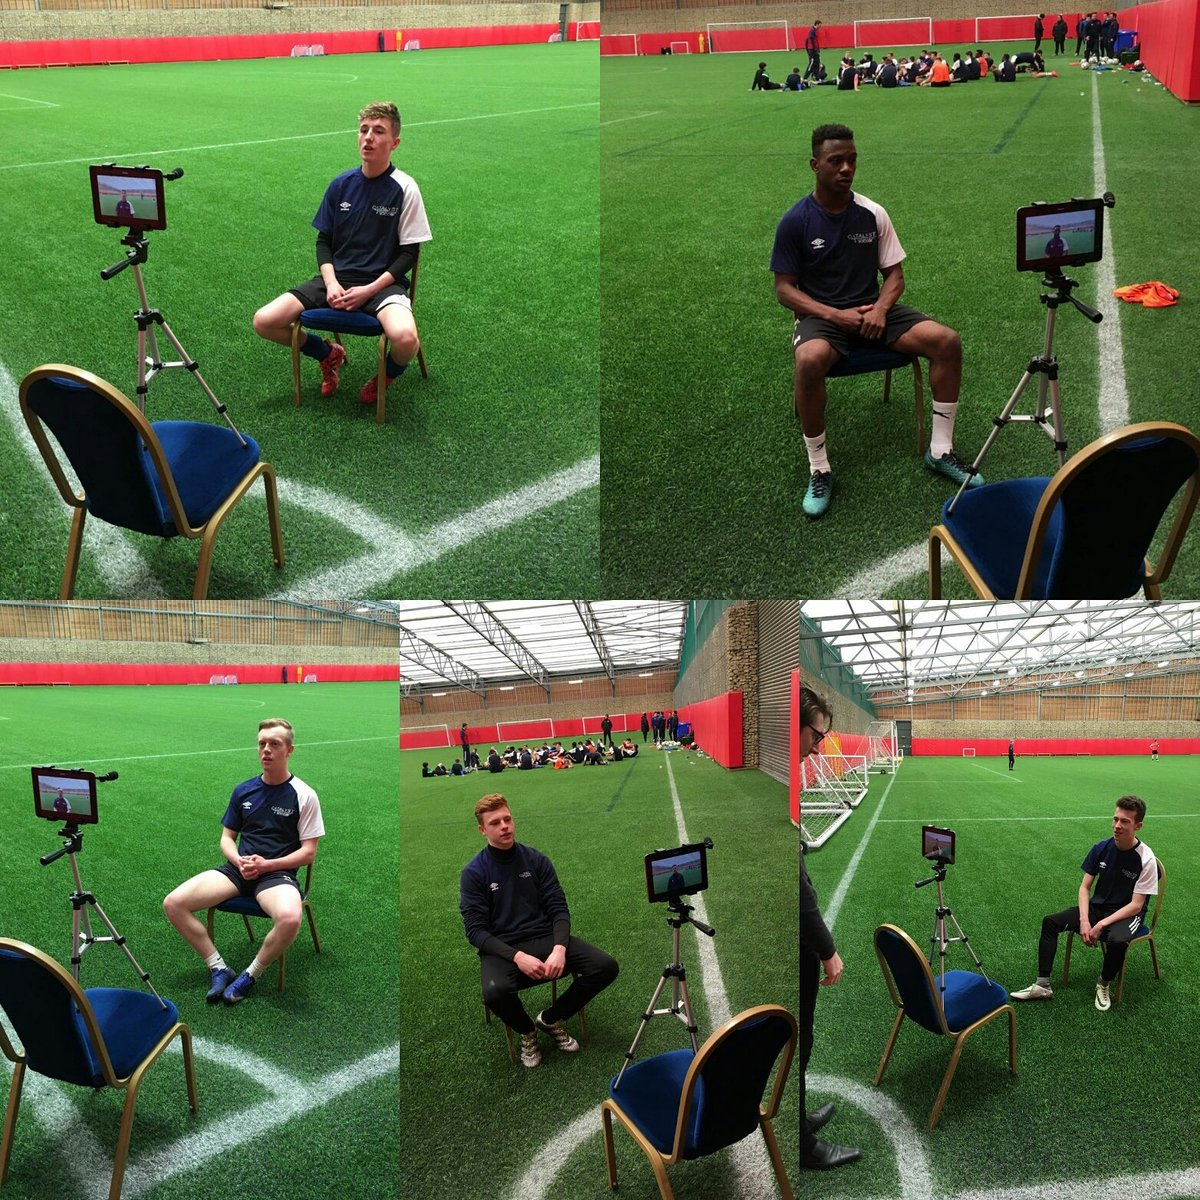 Interview day for C4S lads! ⚽ #mediatraining #c4sfam #c4sacademy #platform #experience https://t.co/wG1sEUZBYe